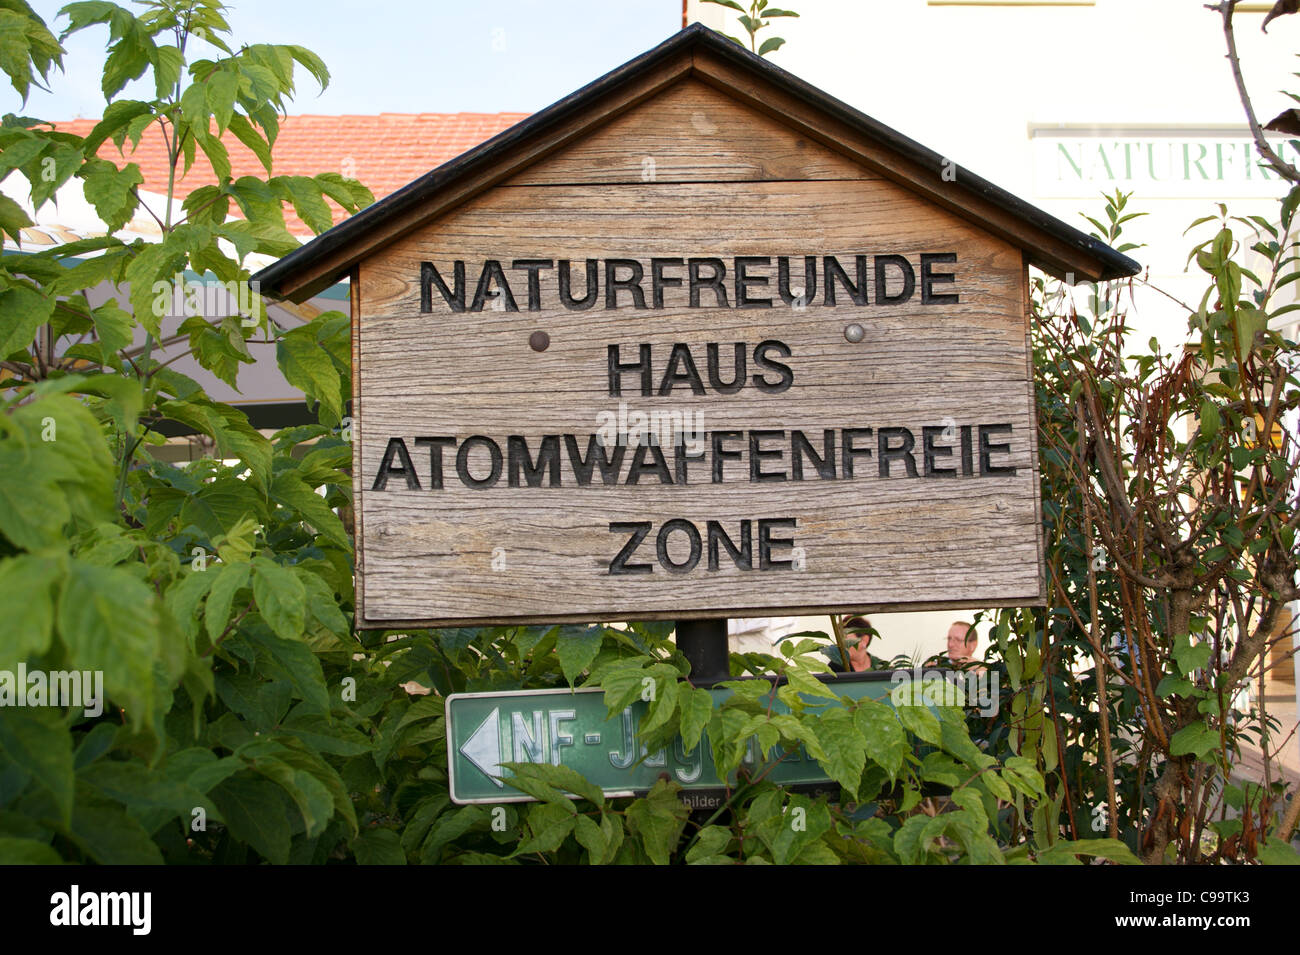 Conservation and nuclear-free zone sign, Speyer, Rheinland-Pfalz, Germany - Stock Image